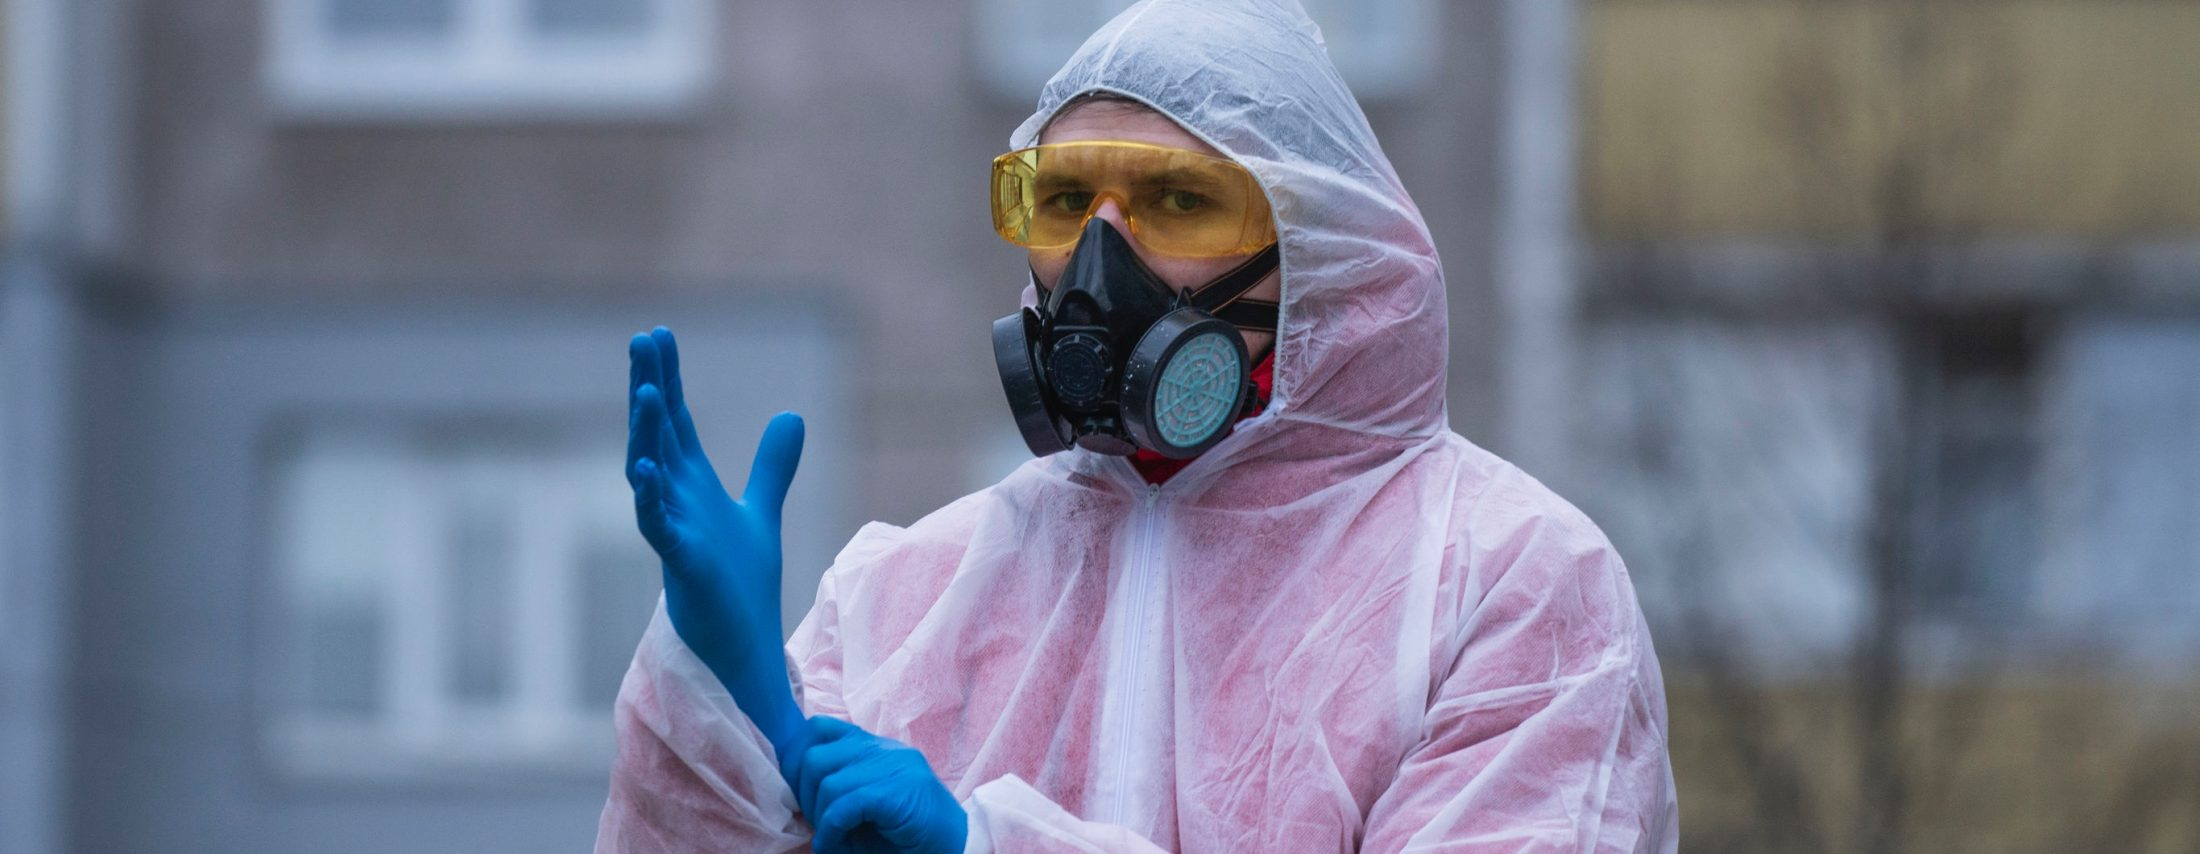 Man in protective chemical suit and respirator